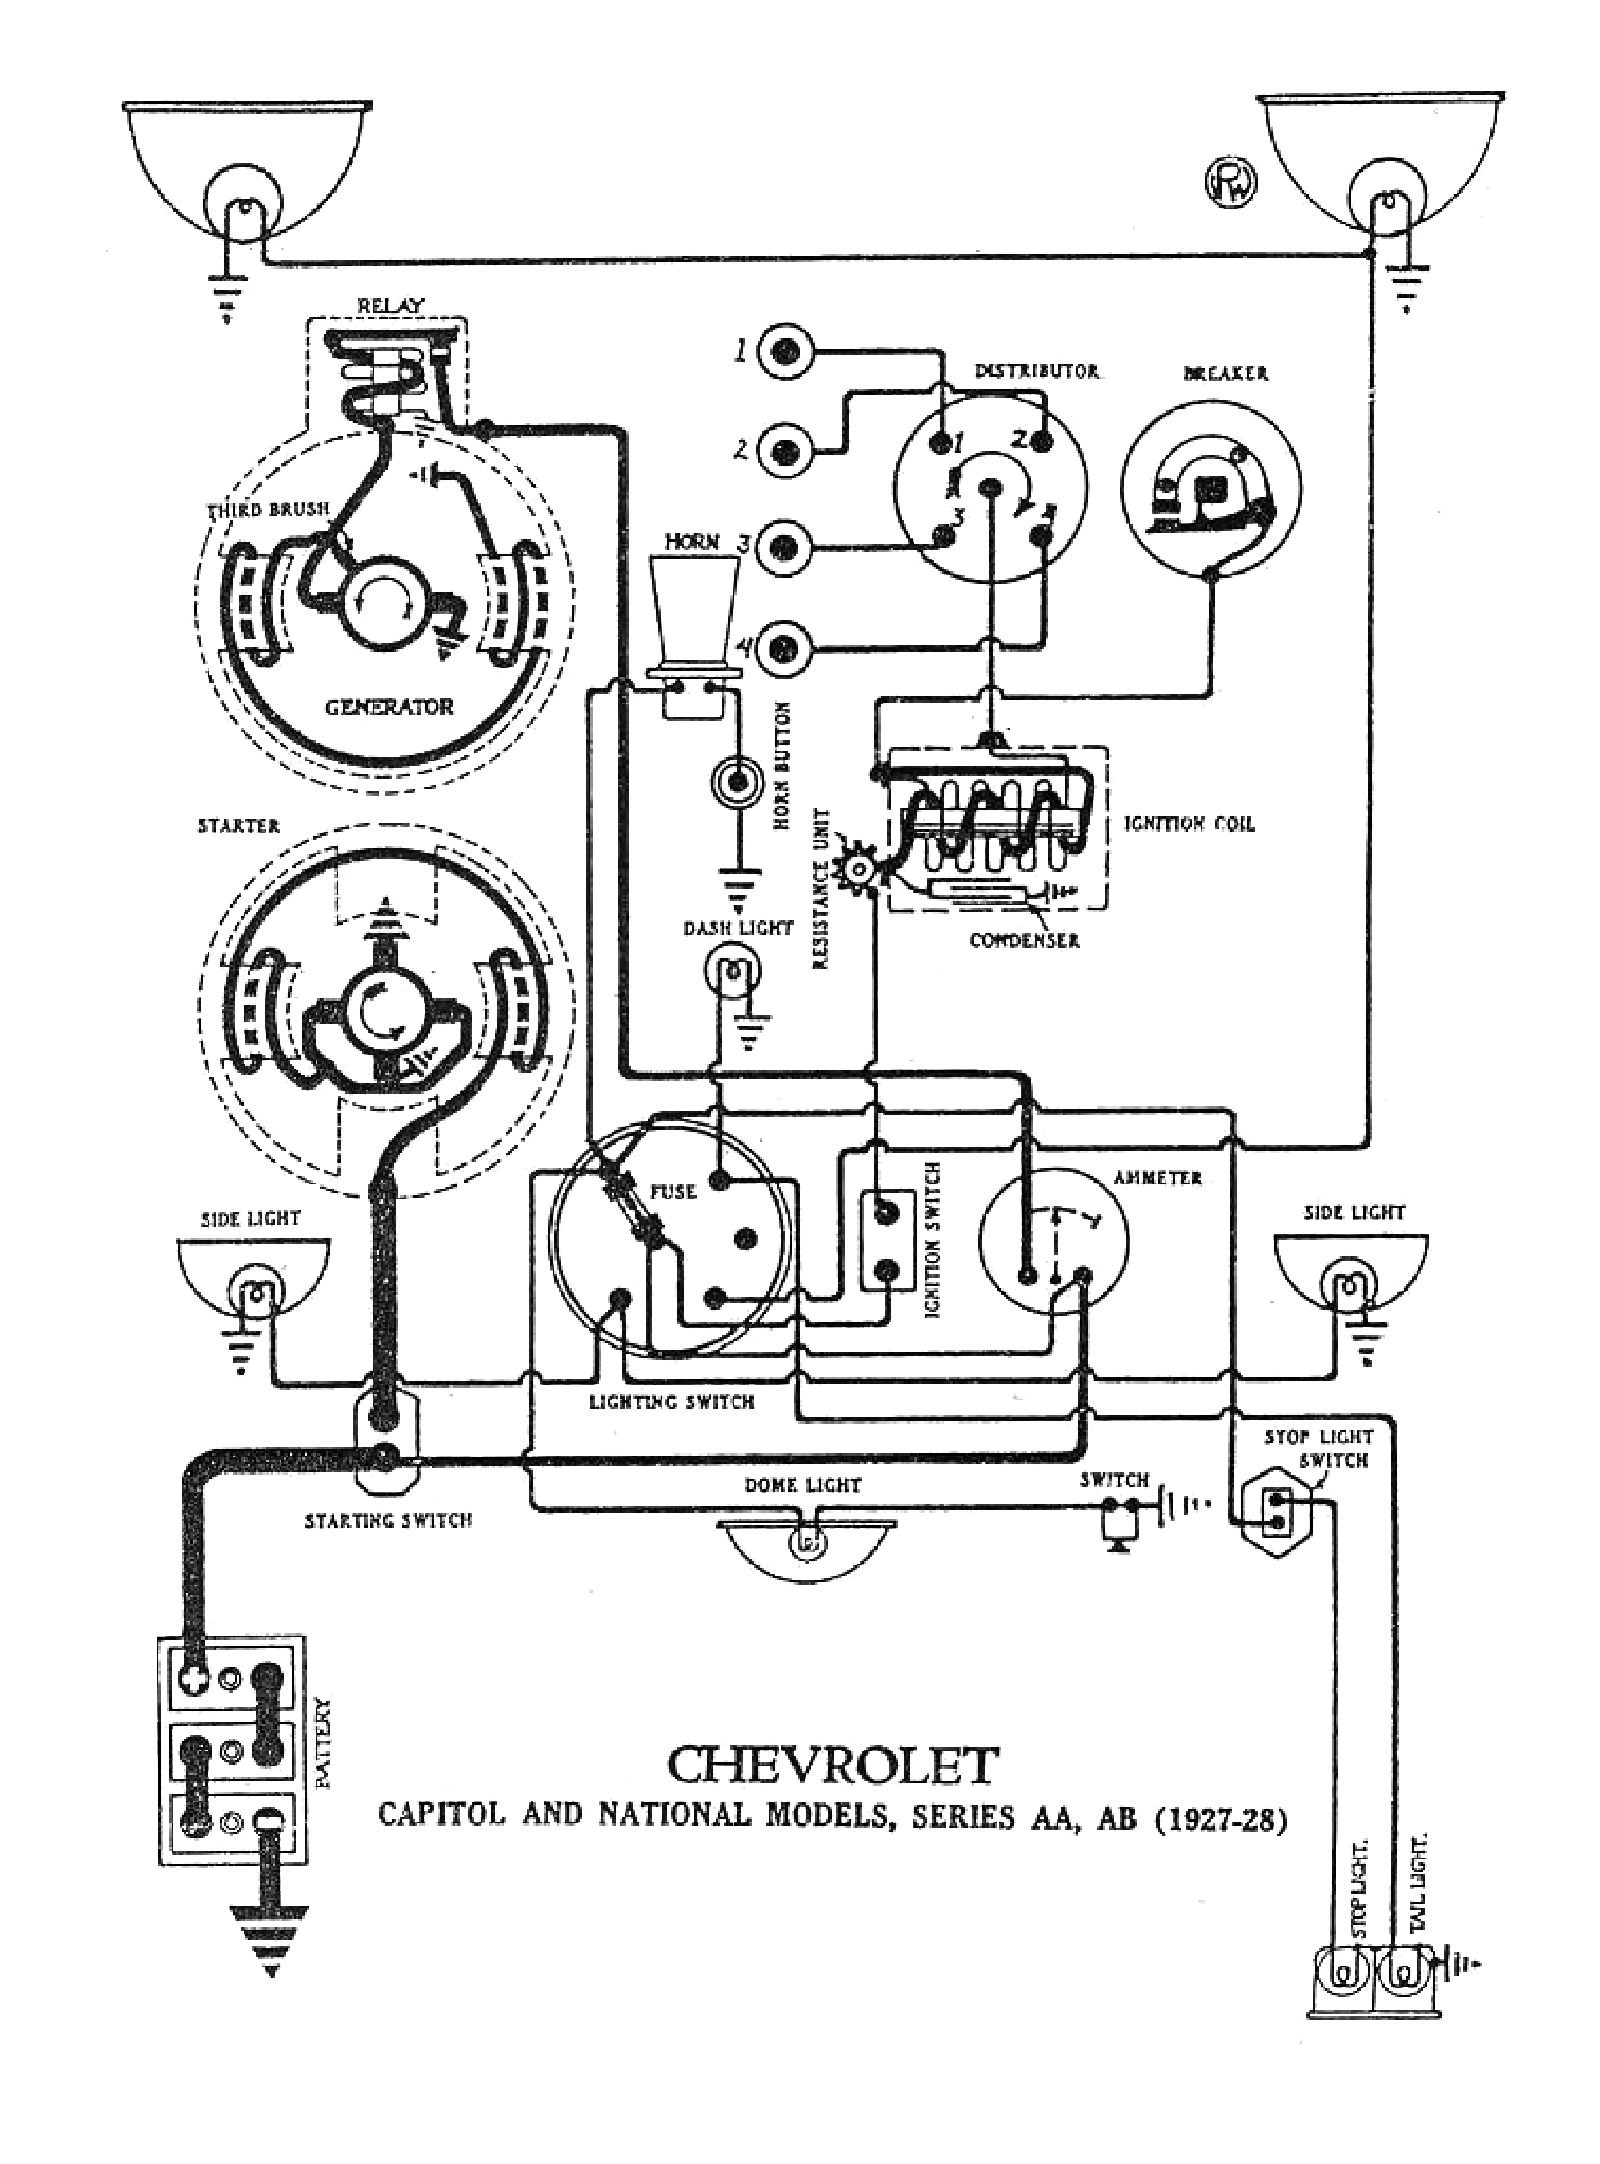 350 Chevy Engine Diagram Chevy Wiring Diagrams Of 350 Chevy Engine Diagram